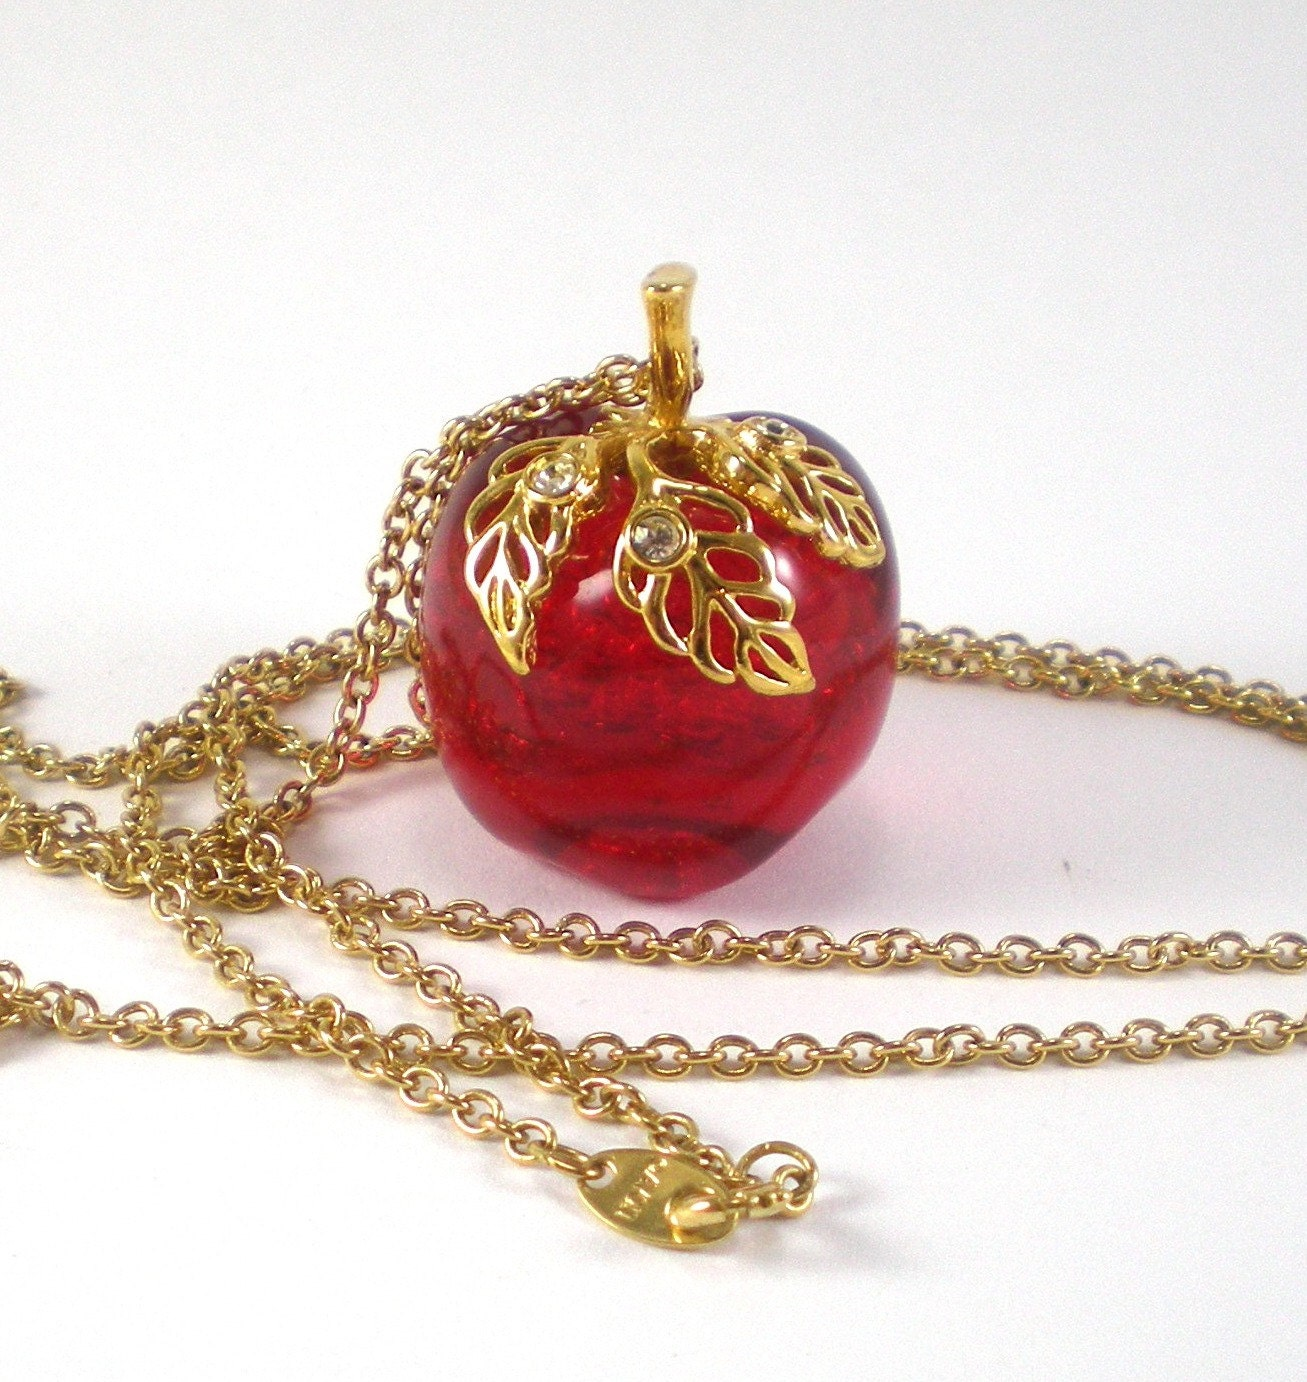 red apple necklace avon vintage jewelry